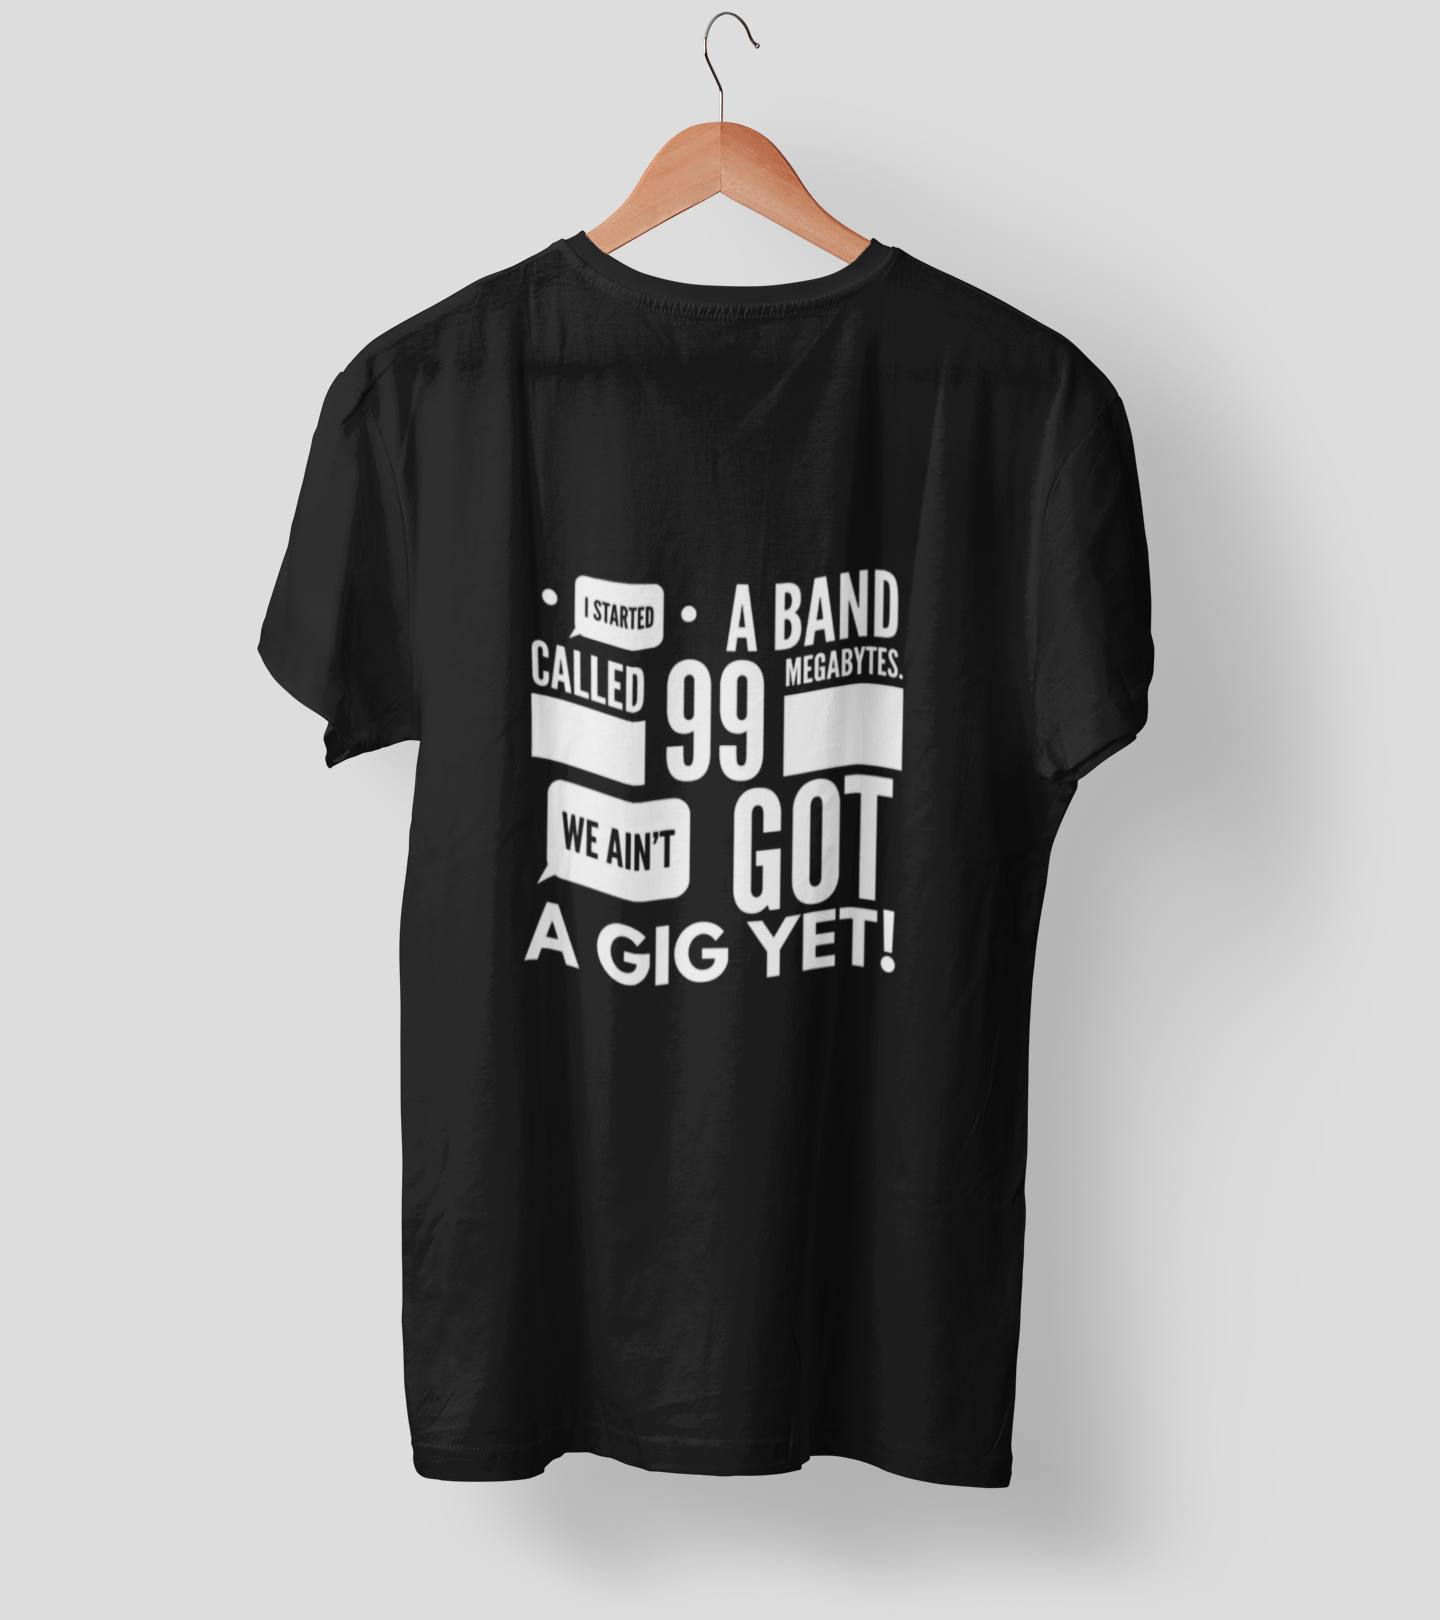 Aint got gig yet 2.0 Clothing Printrove Black S